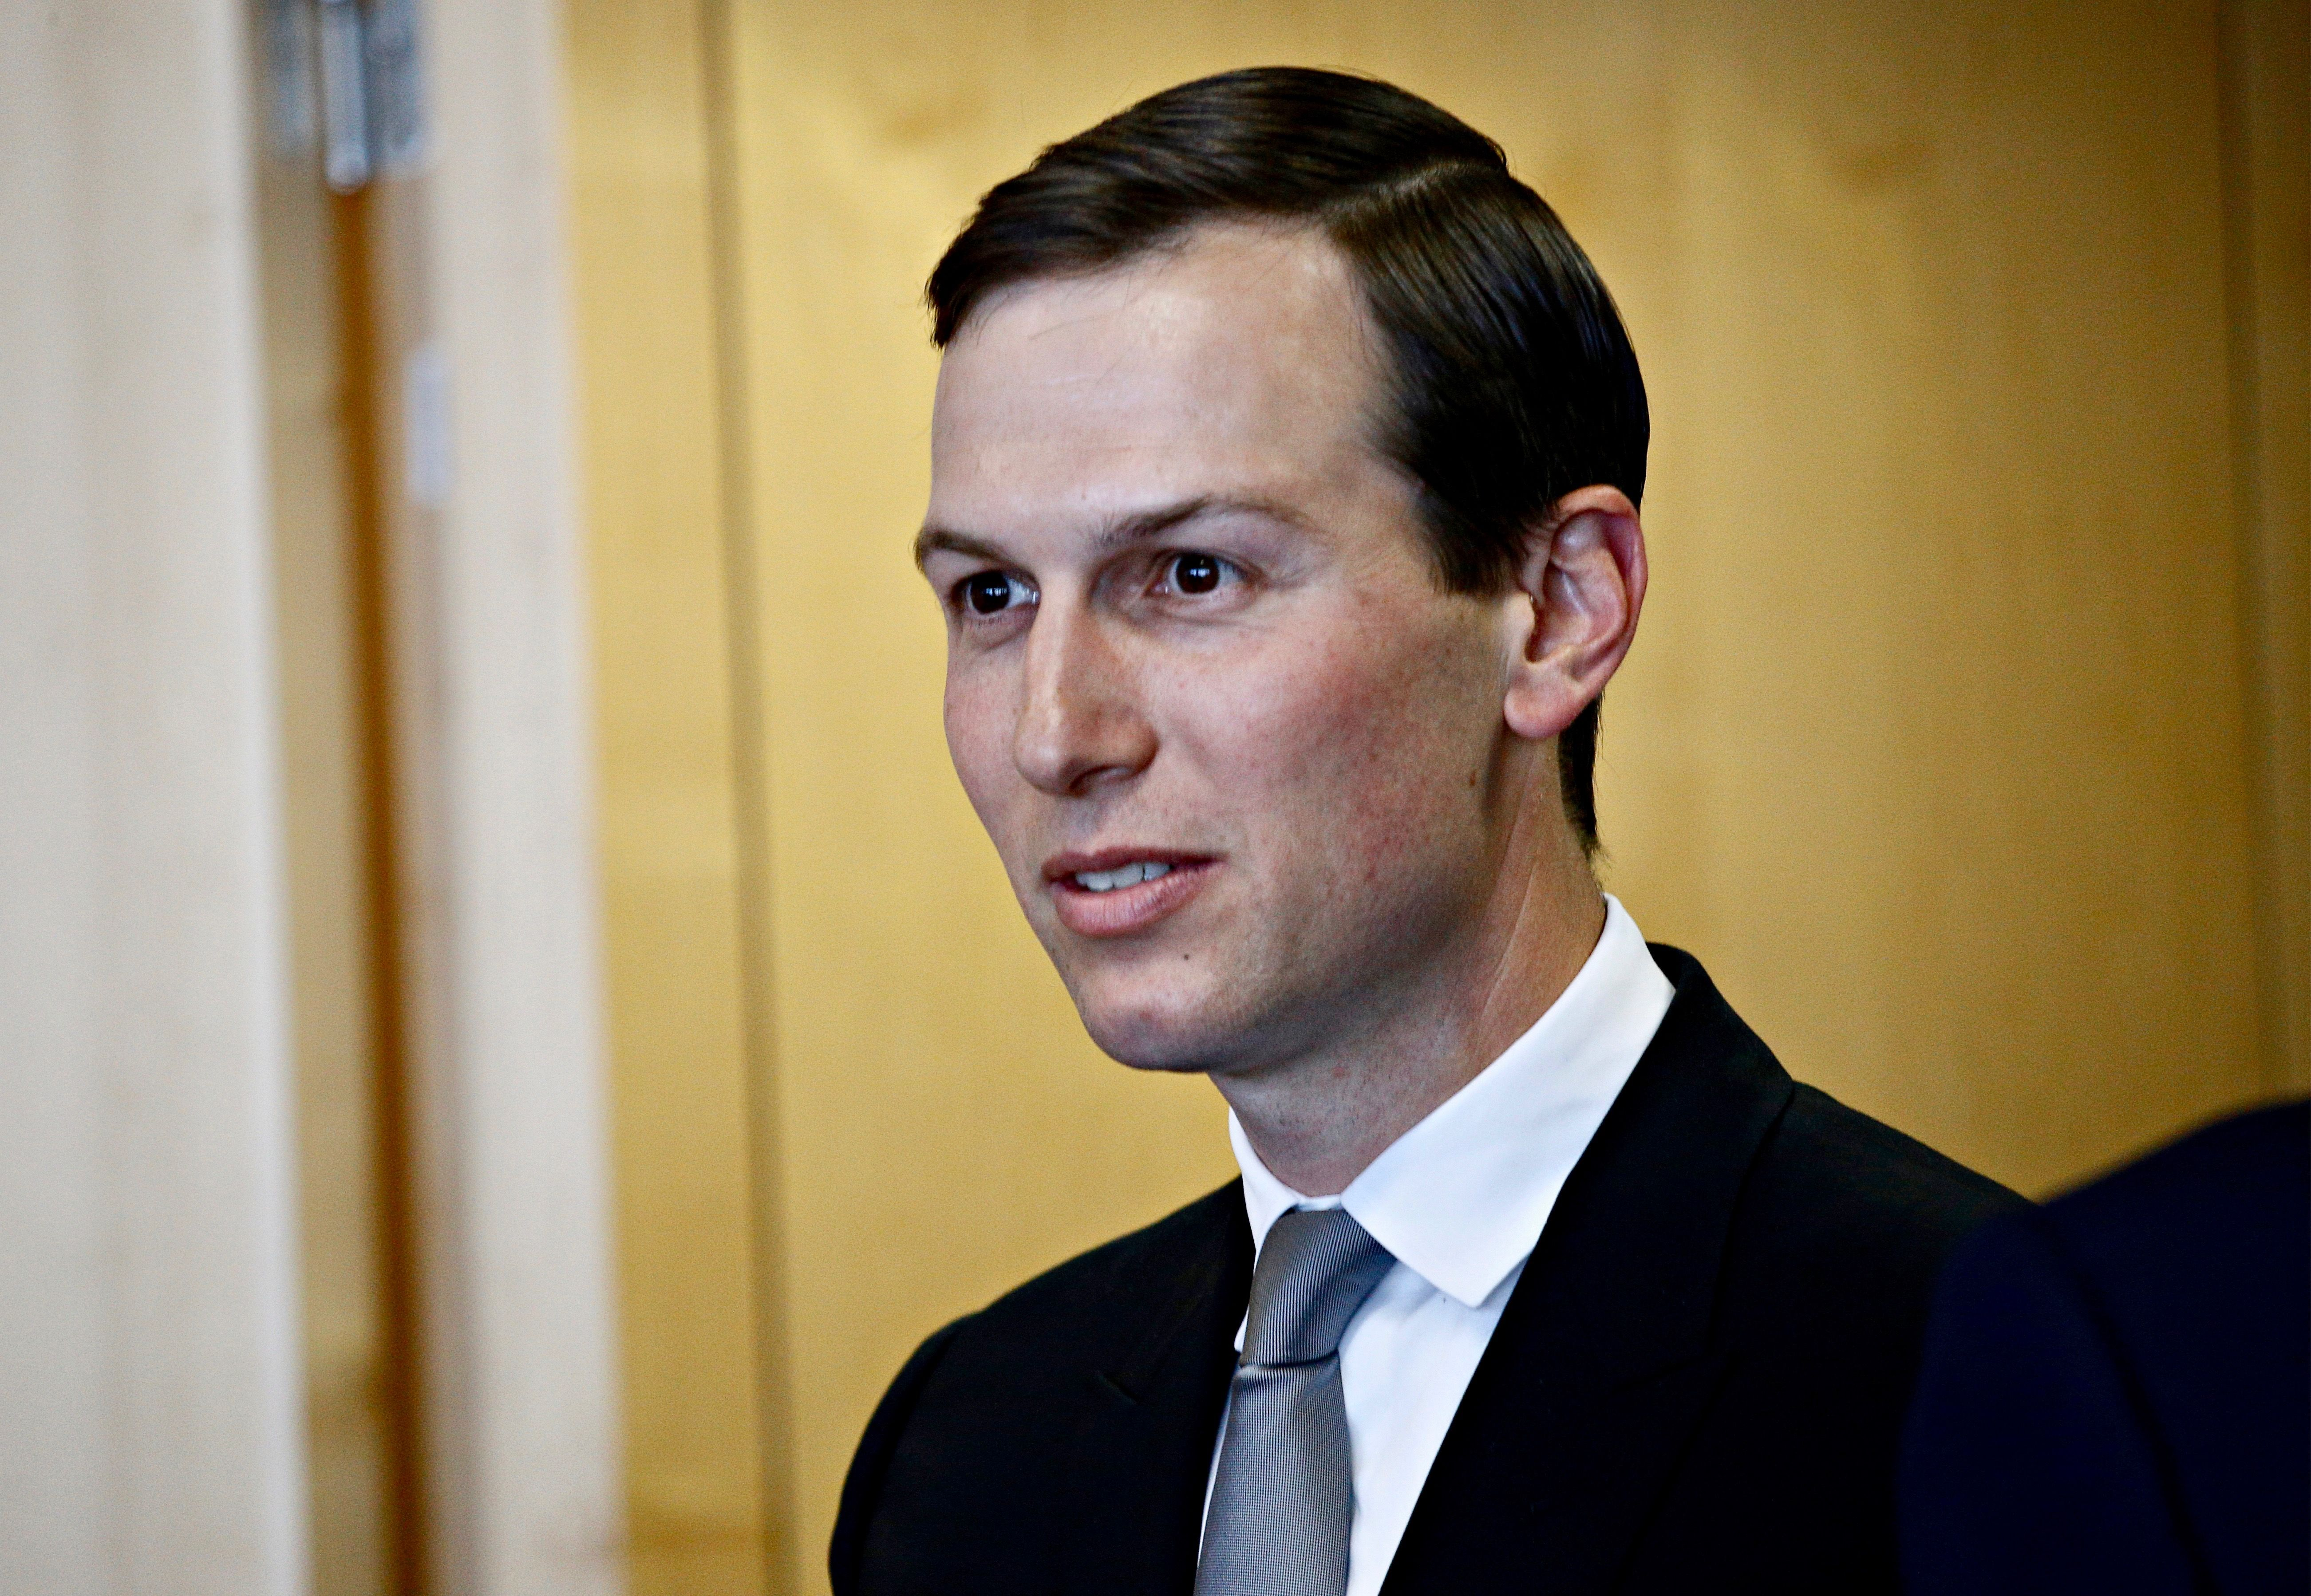 Shell game: Source claims Jared Kushner signed off on secret payments to top Trump campaign officials